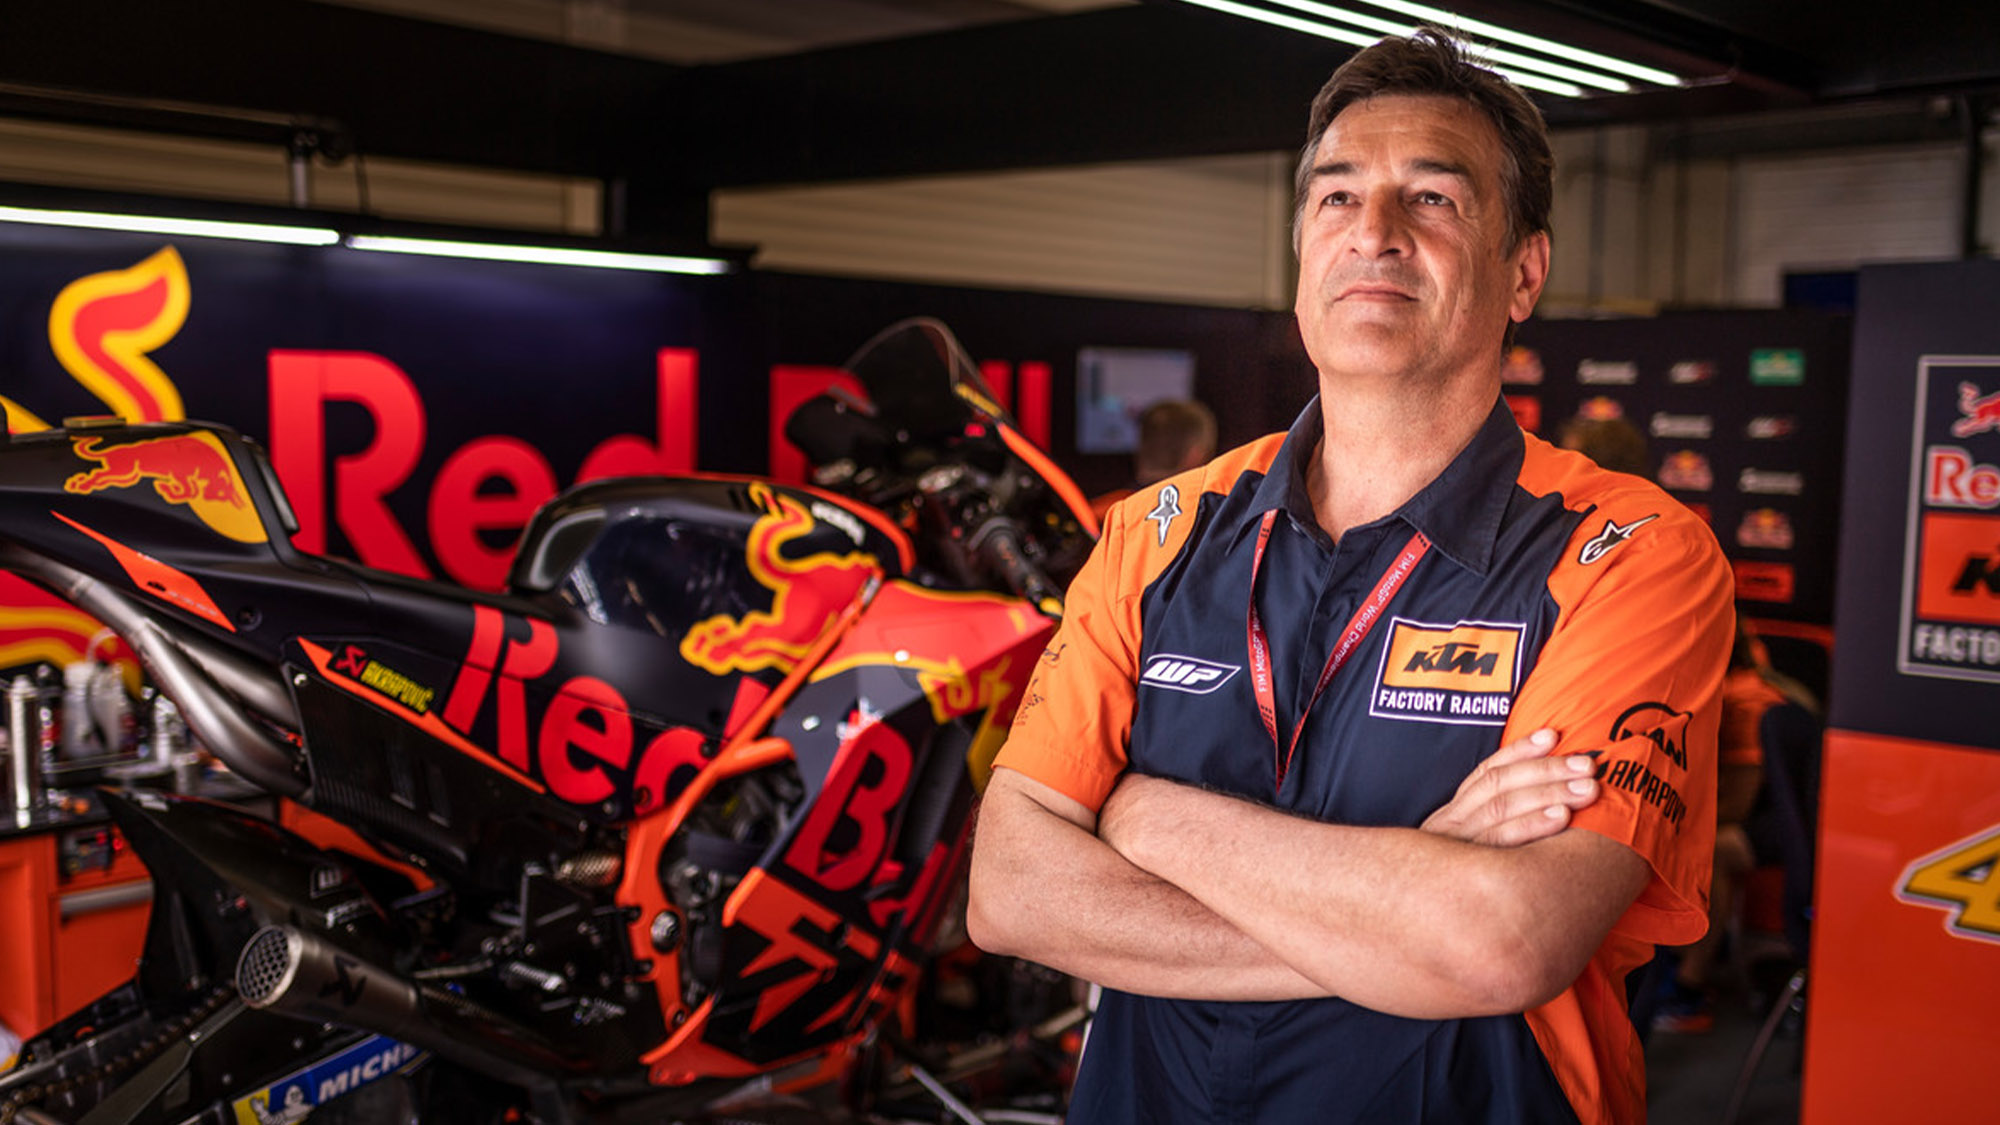 'We build our MotoGP engine so the electronics have to do as little work as possible' - Motor Sport